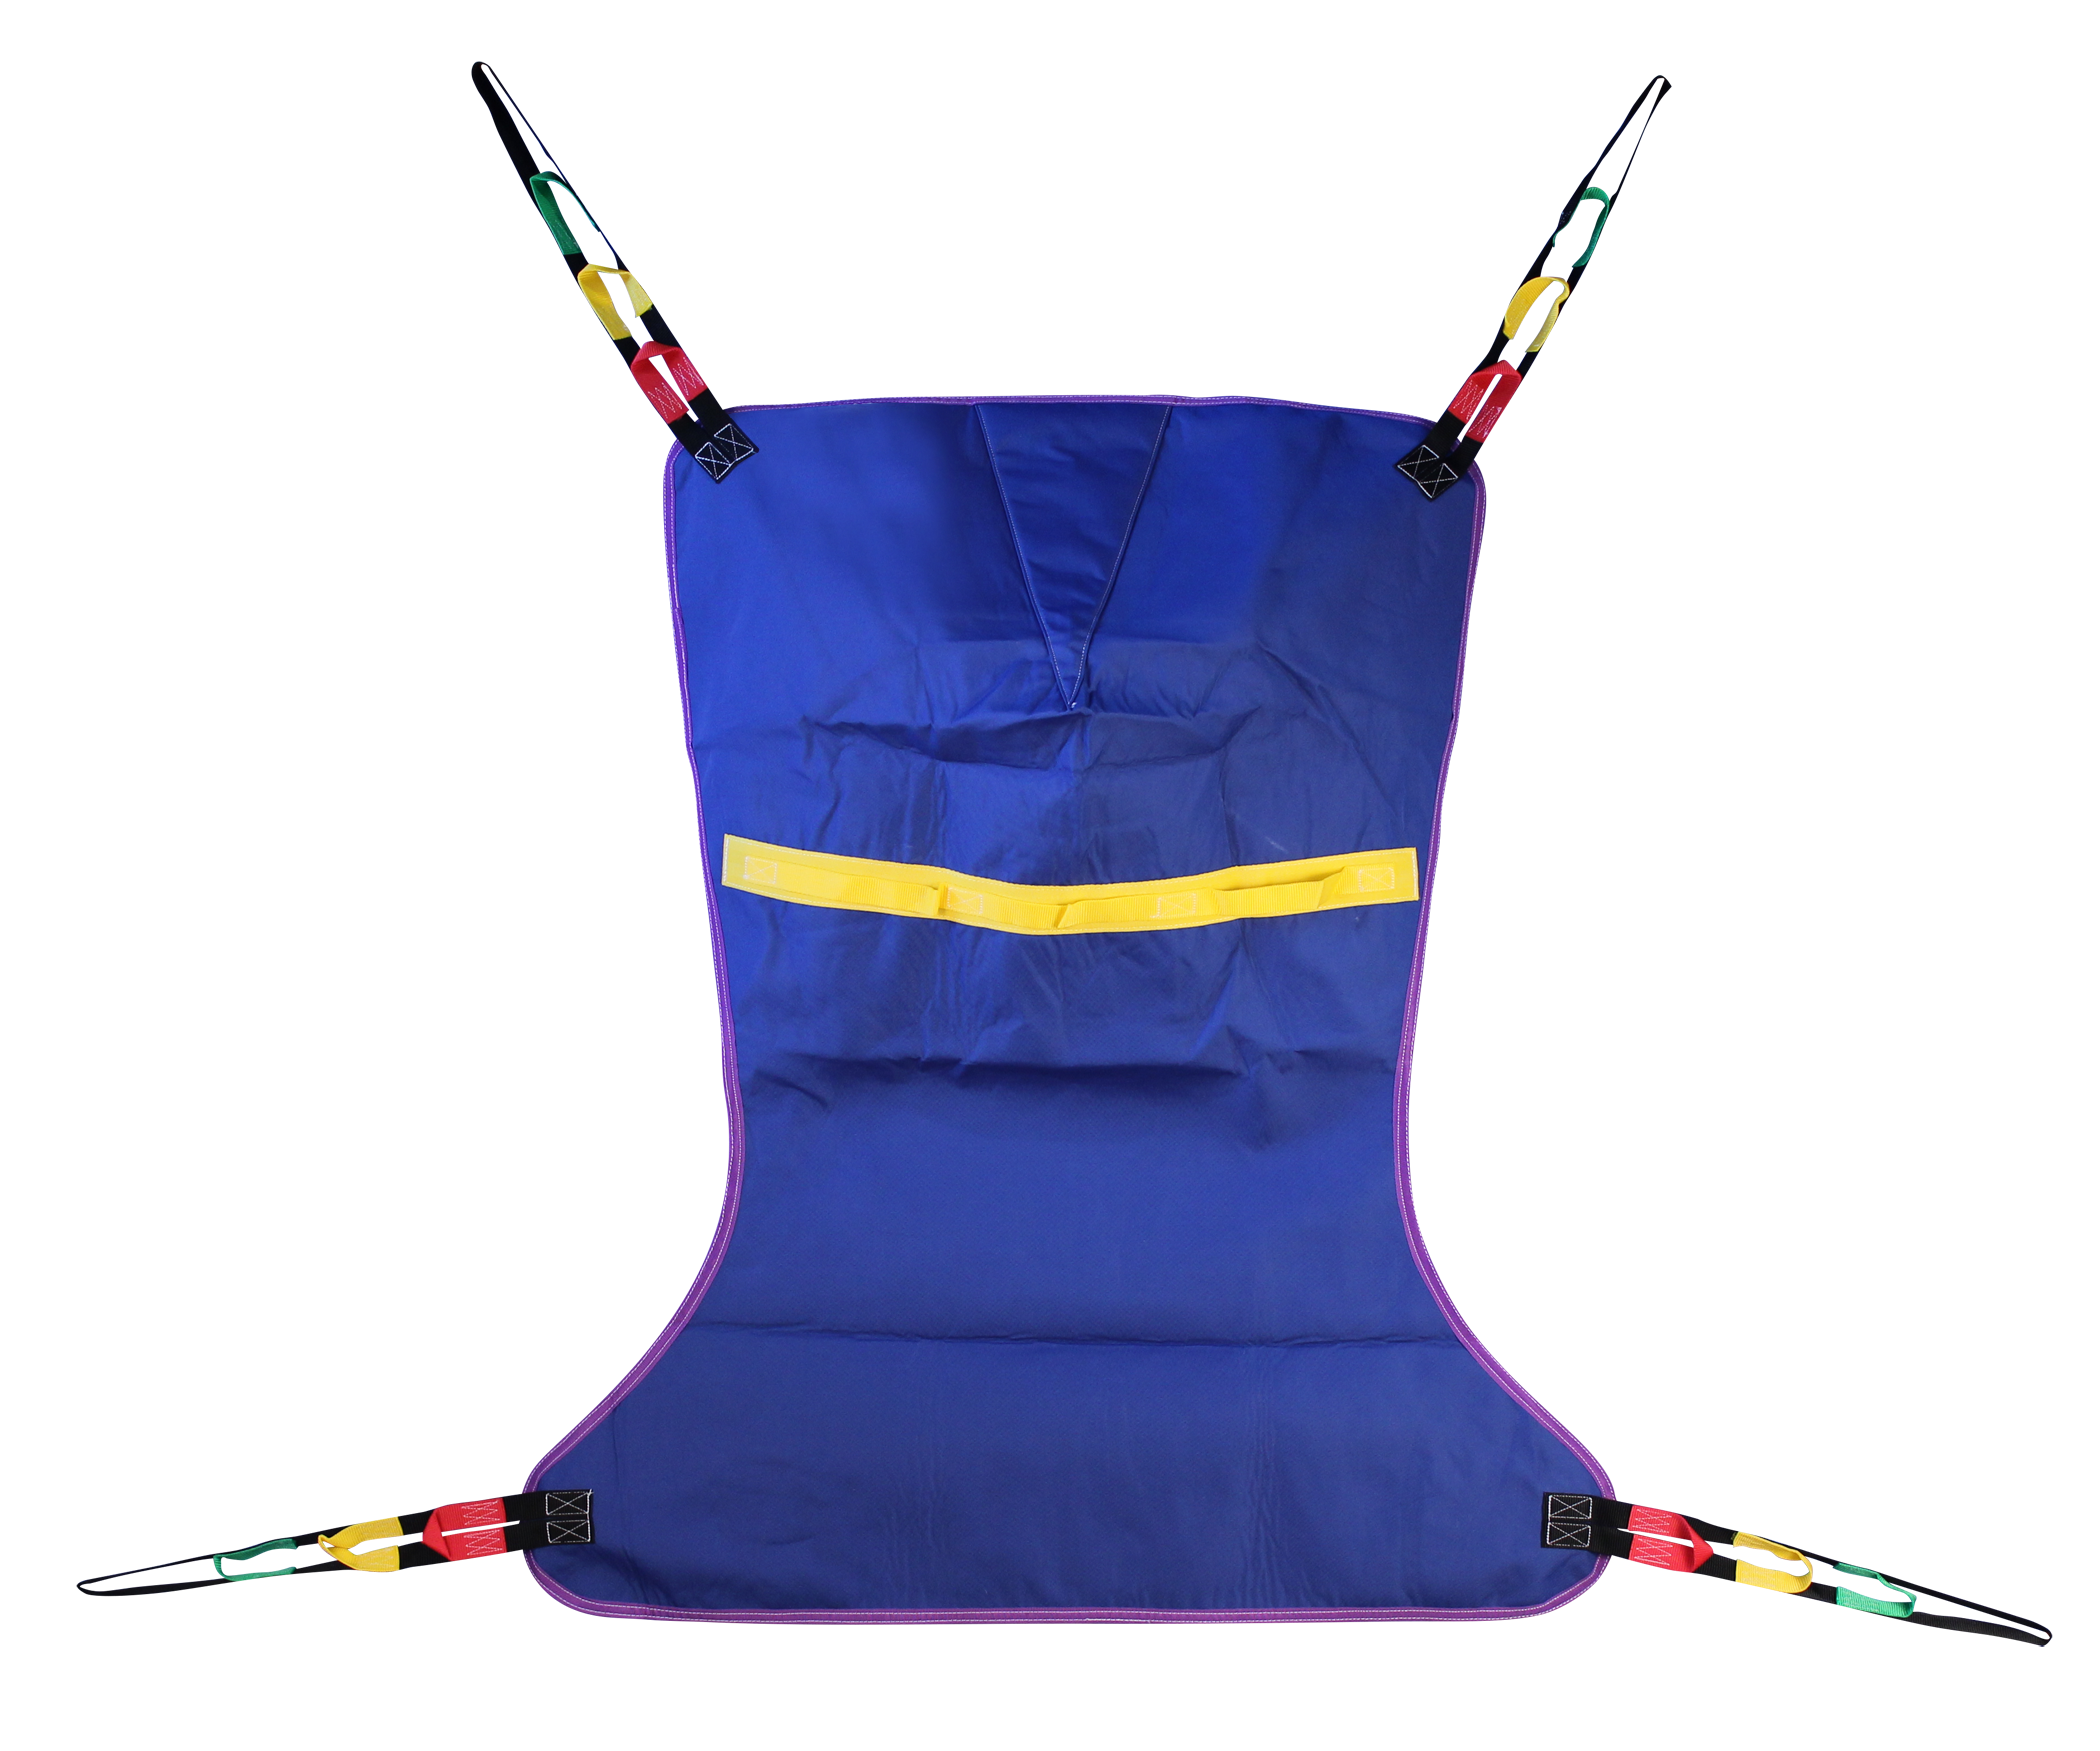 Universal Full Body Sling - Fabric